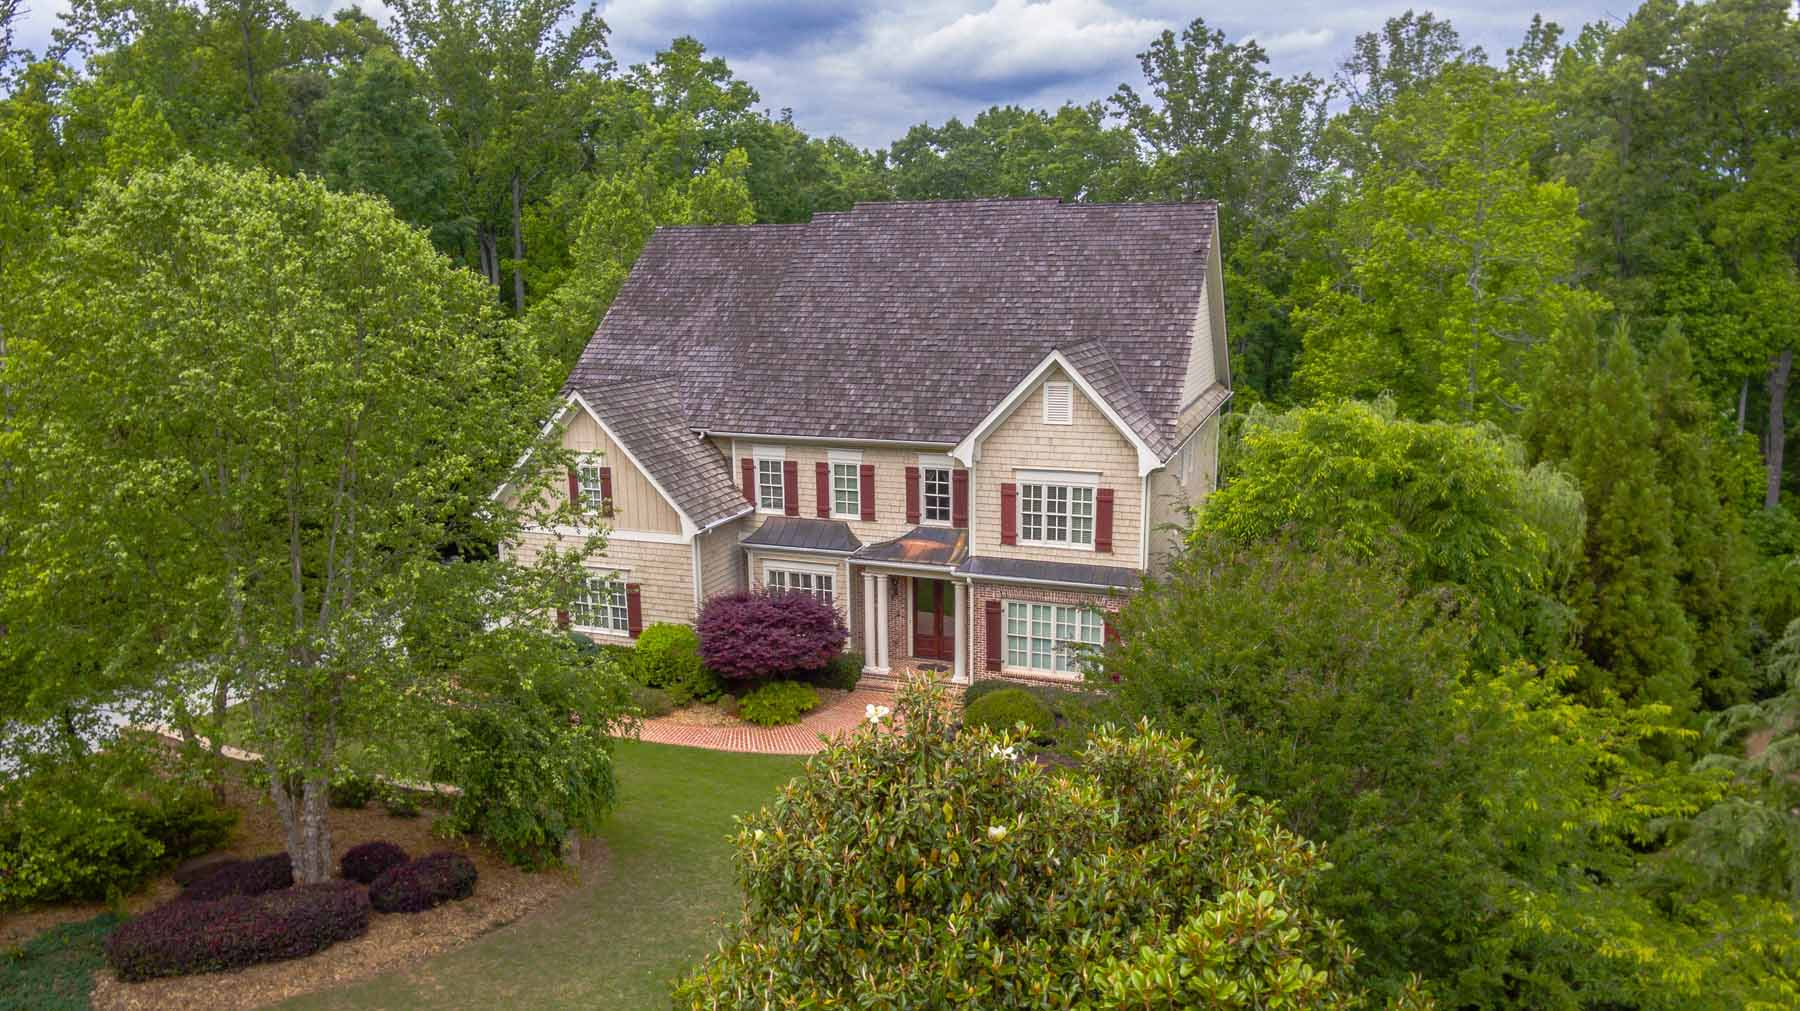 Single Family Home for Sale at Exquisite Executive Home with Custom Heated Pool and Cascading Stream in Milton 13220 Owens Way Alpharetta, Georgia, 30004 United States